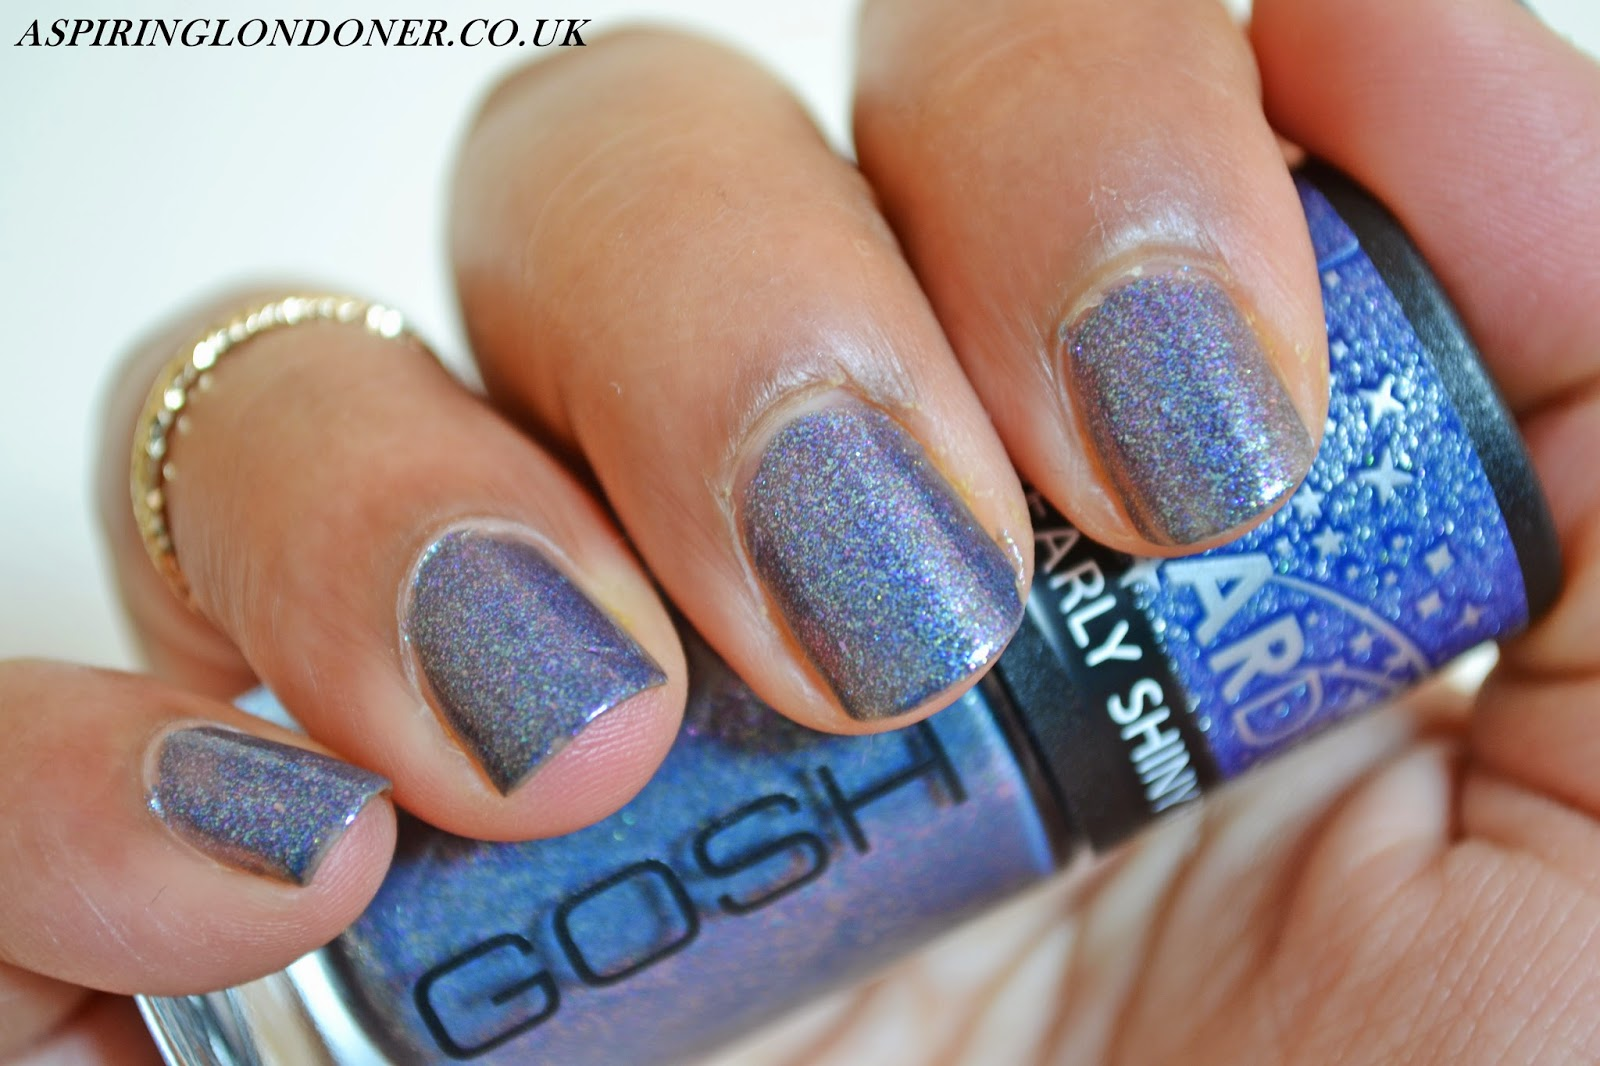 GOSH Stardust Nail Lacquers 631 Million Stars Review & Swatches - Aspiring Londoner